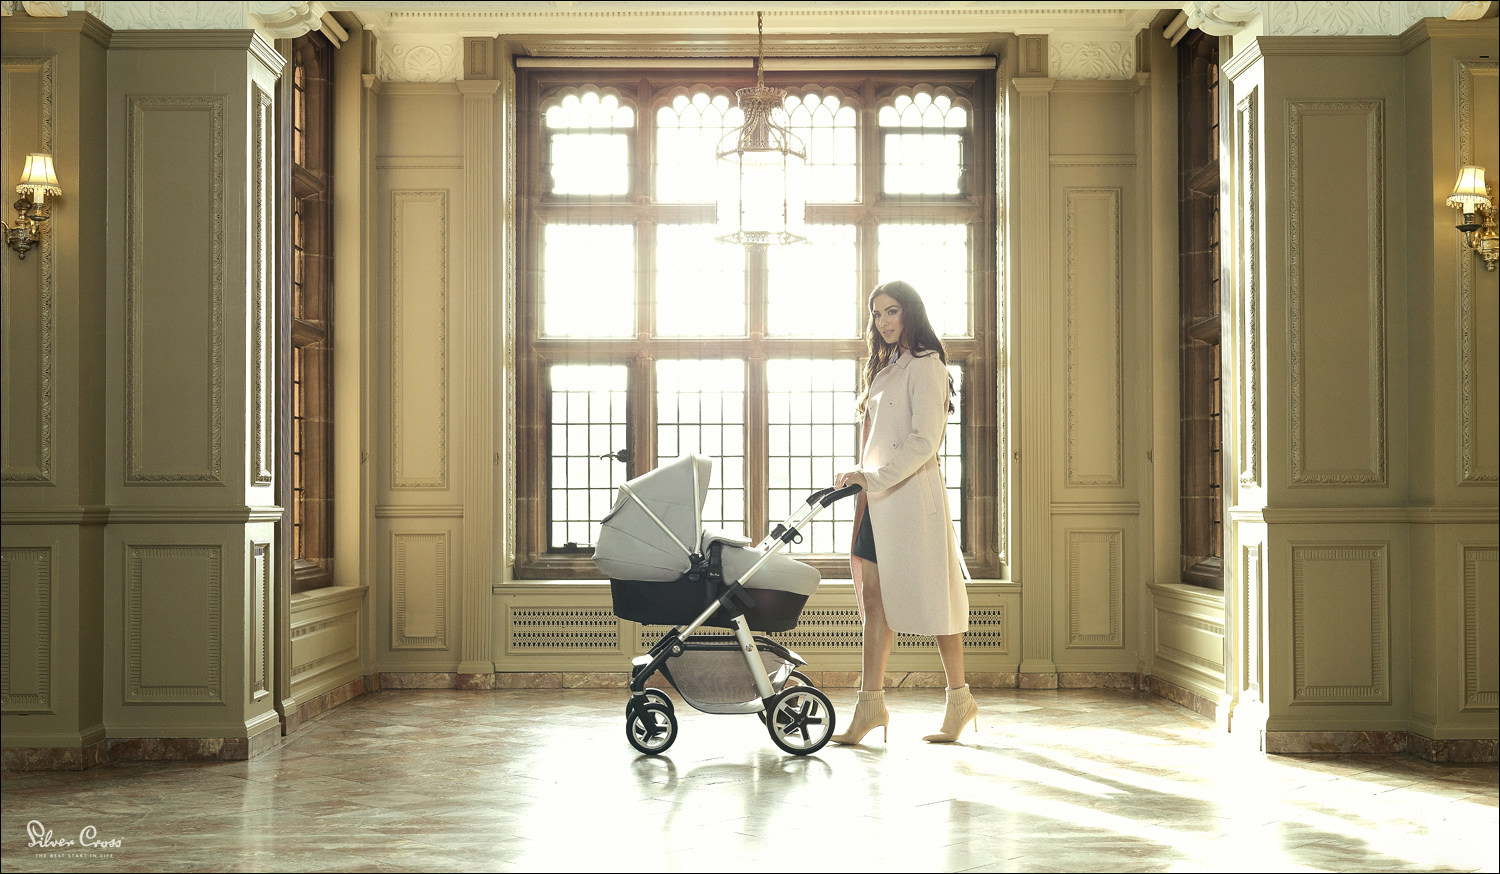 A lifestyle location product & fashion photography shoot for Silver Cross prams. We hired a beautiful mansion to shoot this in. A very technical shoot balancing the natural daylight with flash photography.